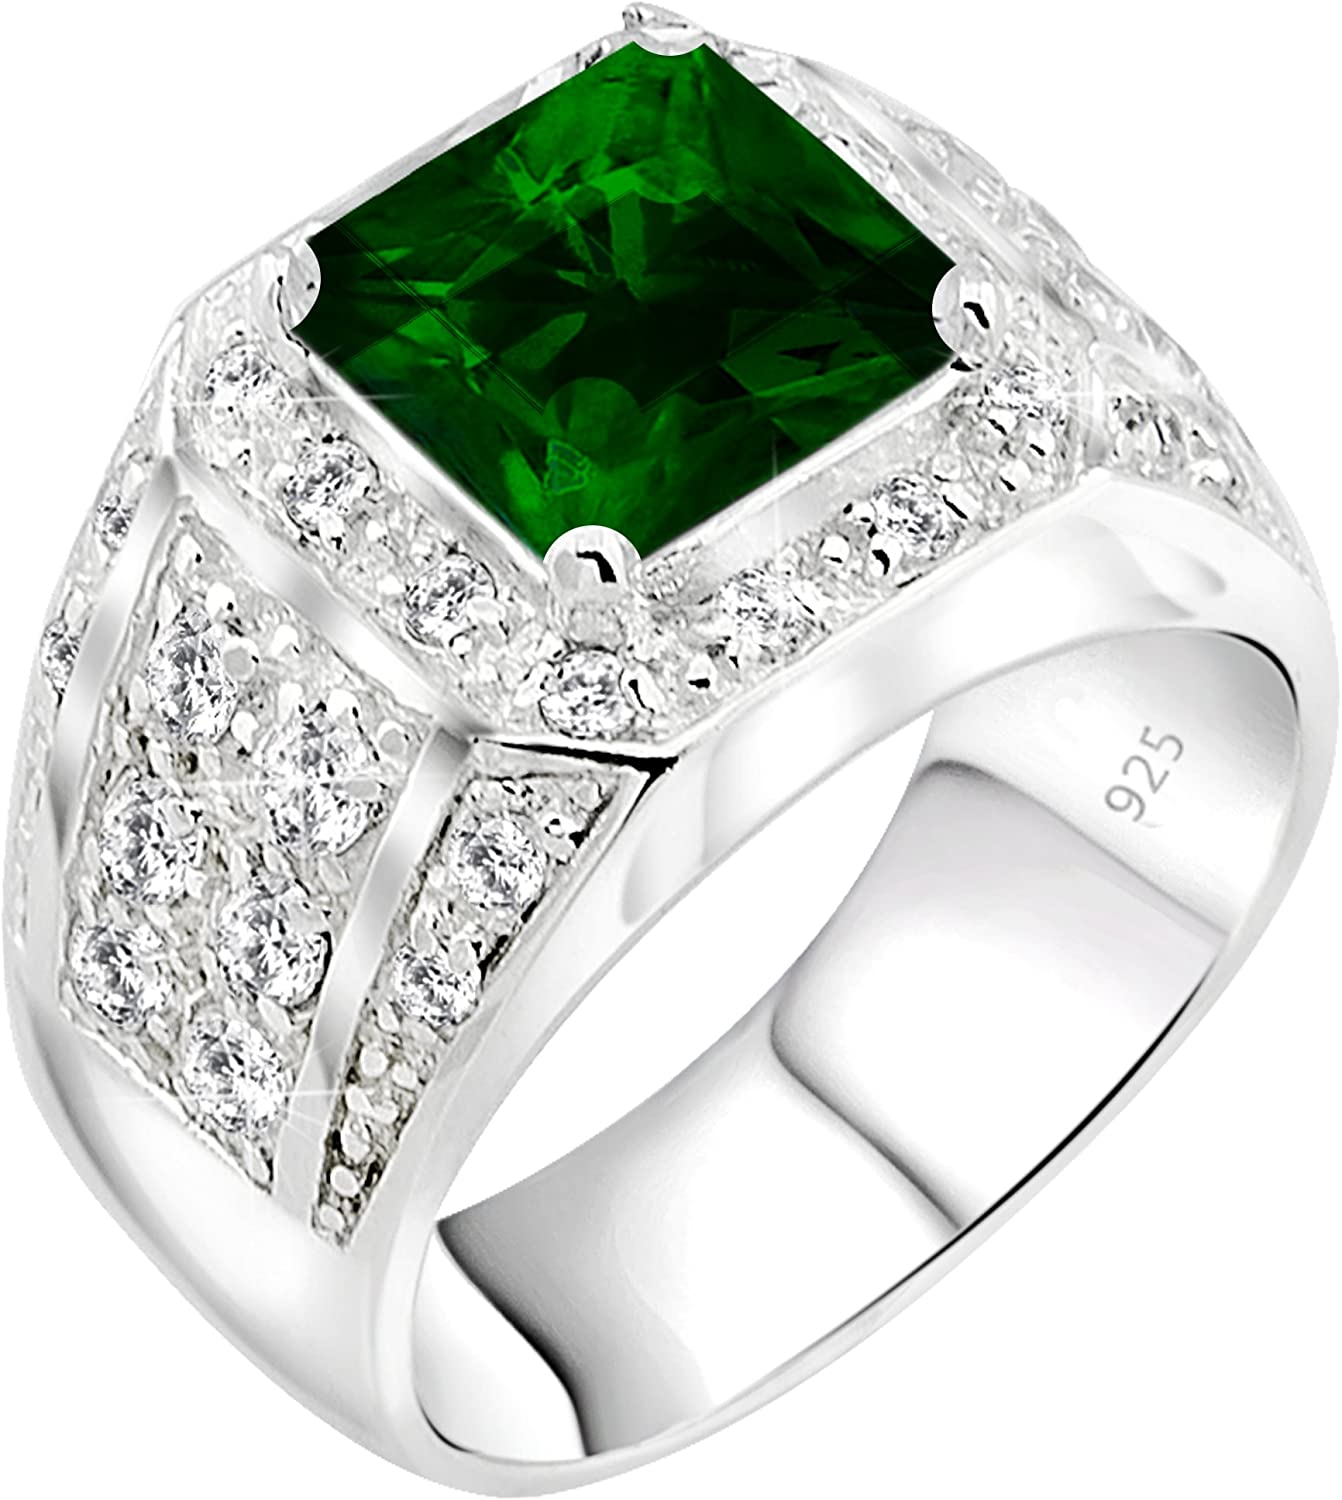 [2-5 Days Delivery] Men's Elegant Sterling Silver .925 Ring High Polish Princess Cut Featuring a Synthetic Green Emerald and 32 Fancy Round Cubic Zirconia (CZ) Stones